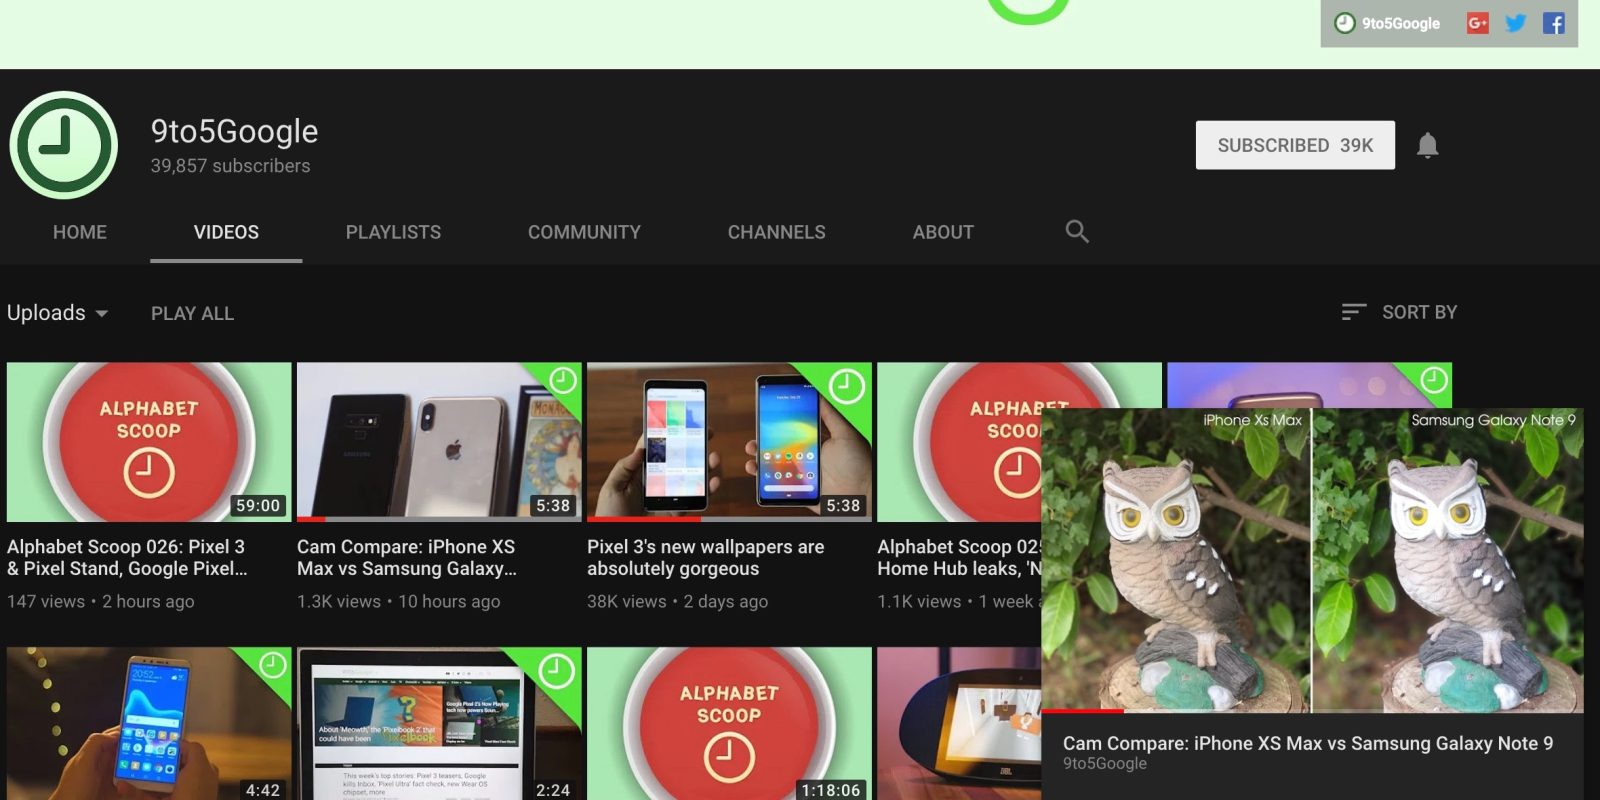 Youtube Miniplayer Rolling Out For Web Picture In Picture 9to5google